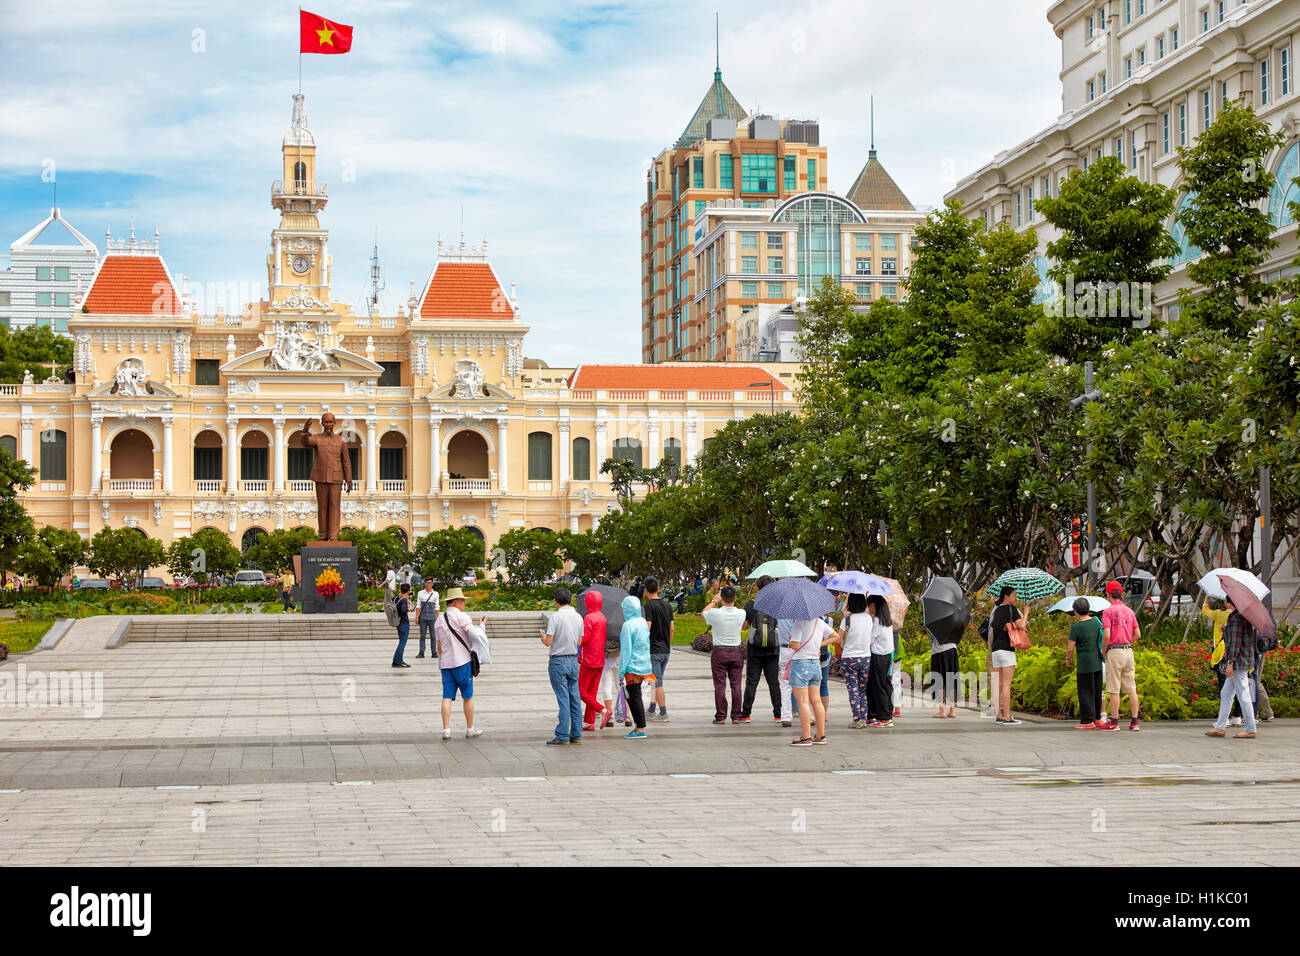 Ho Chi Minh Statue in front of People's Committee Building. Ho Chi Minh City, Vietnam. - Stock Image